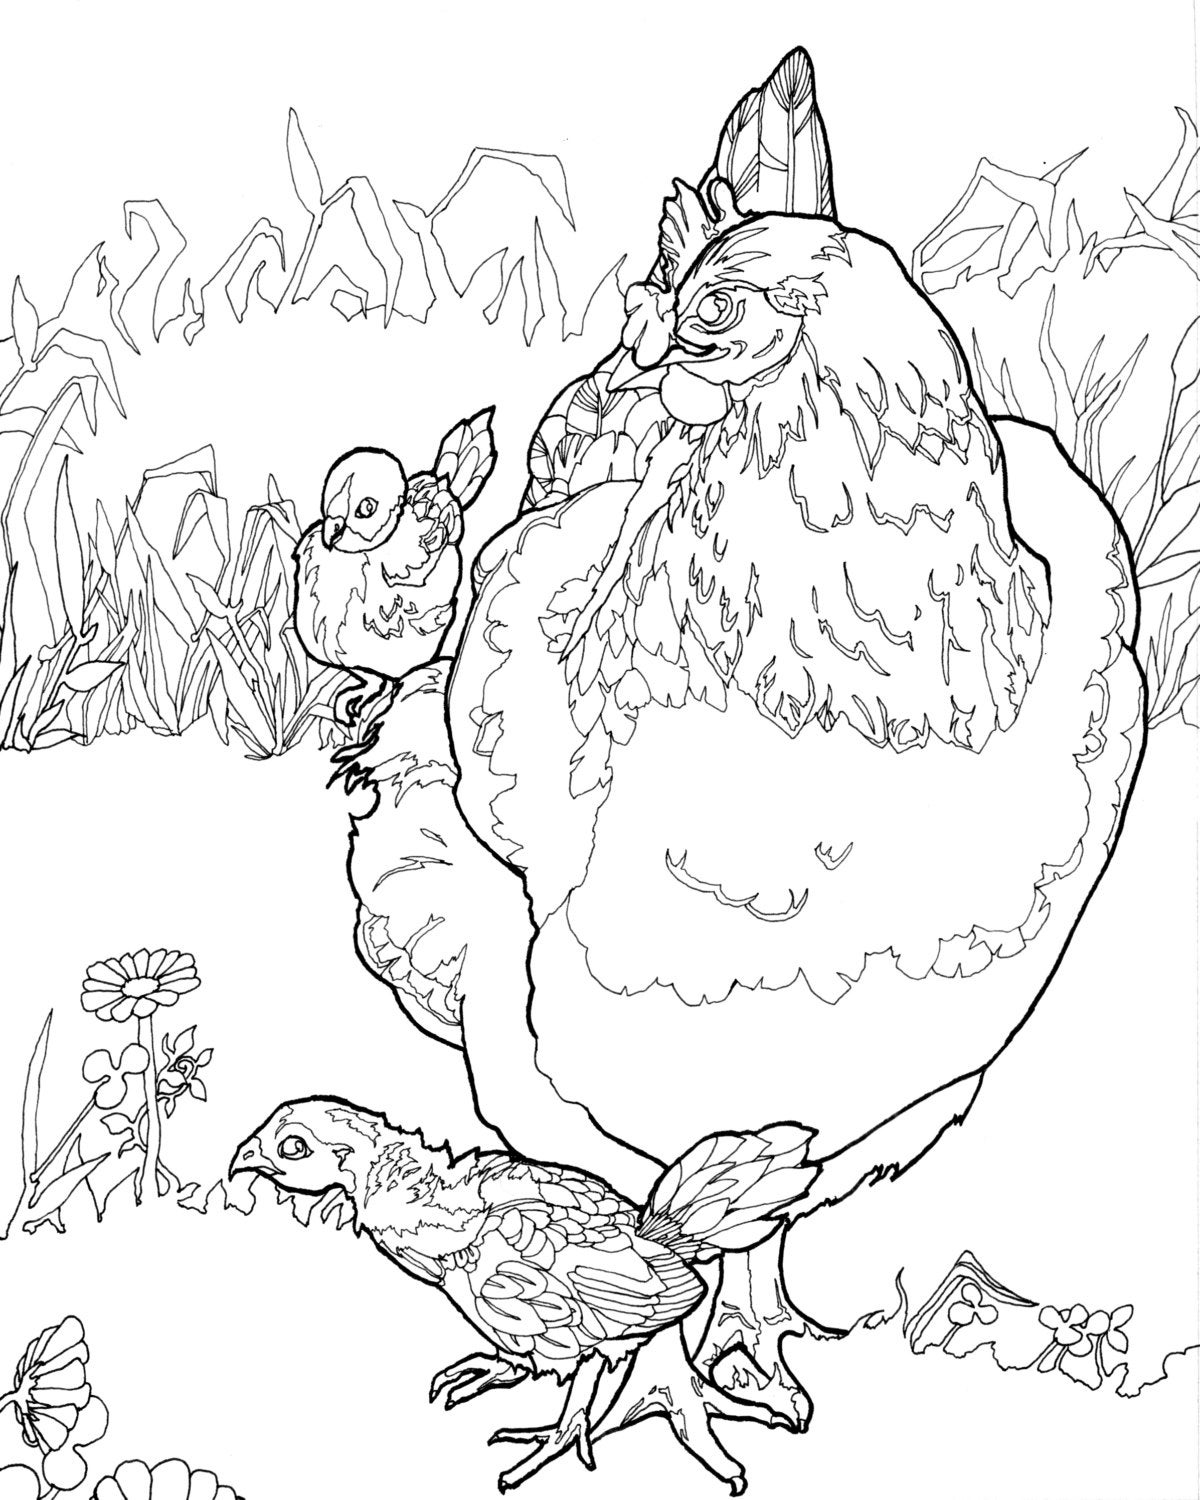 chicken coloring pages bucket full of drumstick fried chicken coloring pages coloring pages chicken